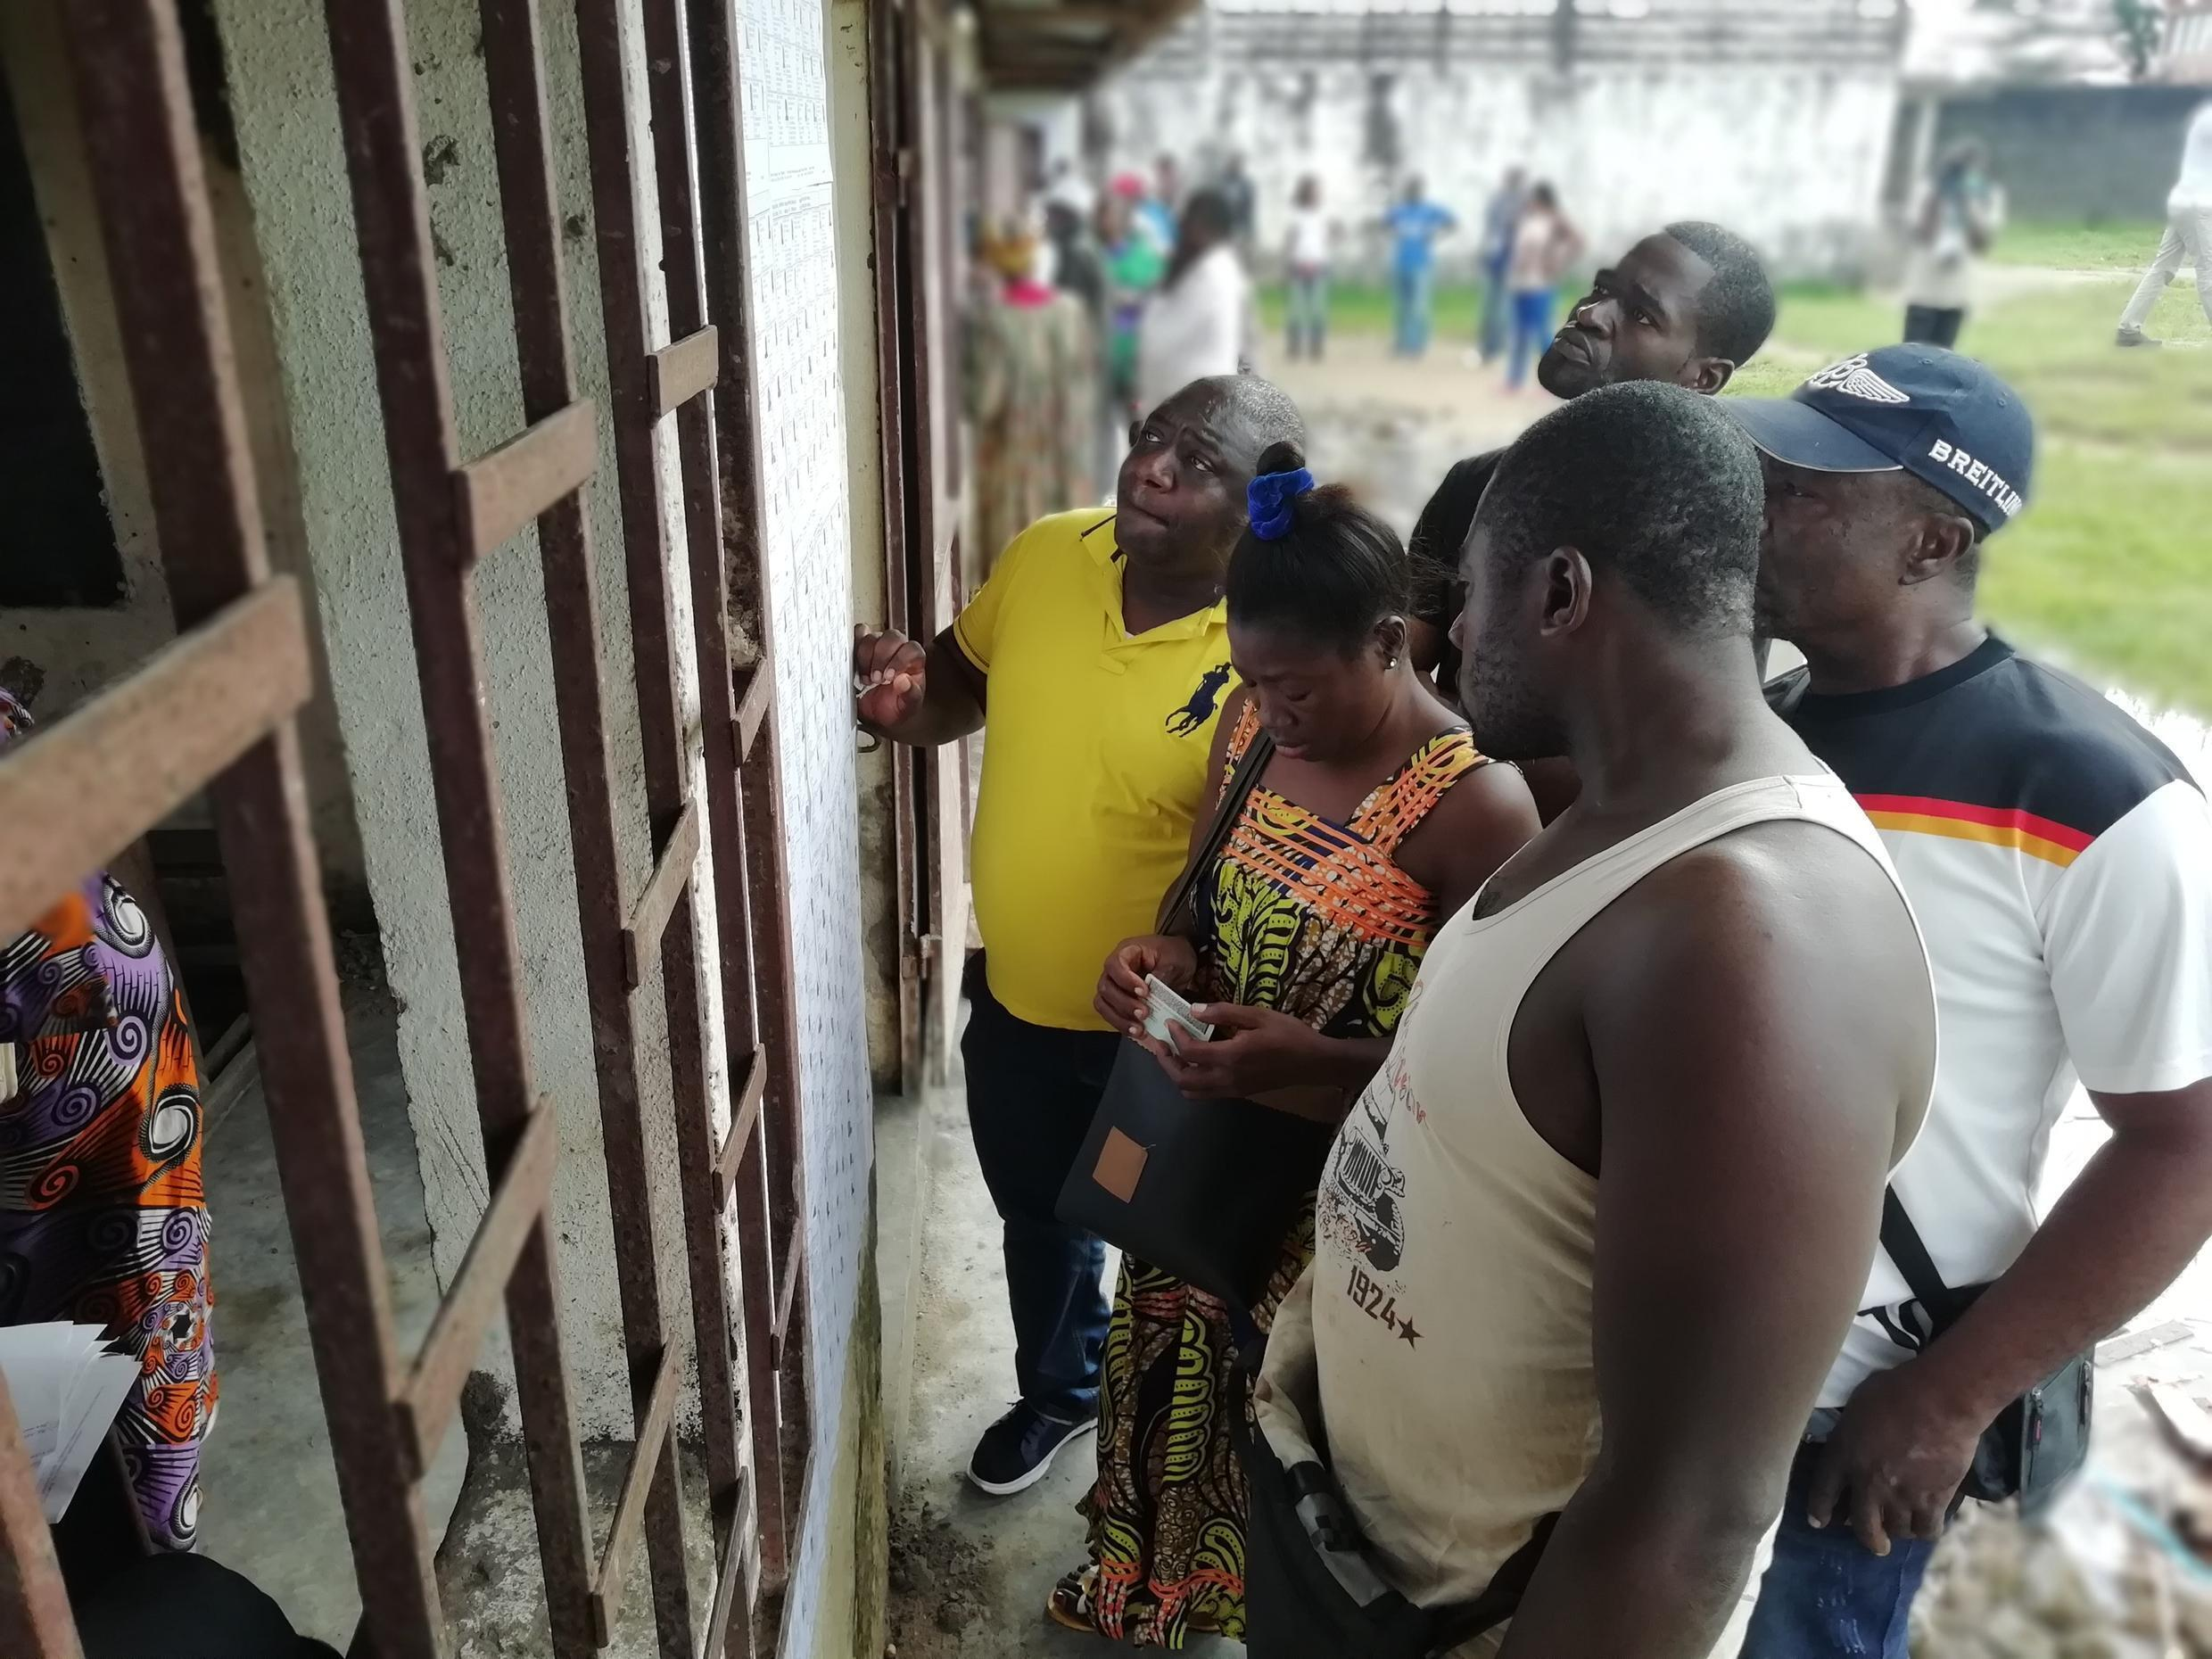 People search for their names on voter lists outside a polling station at the New Bell Youth Centre in Douala, 7 October 2018.